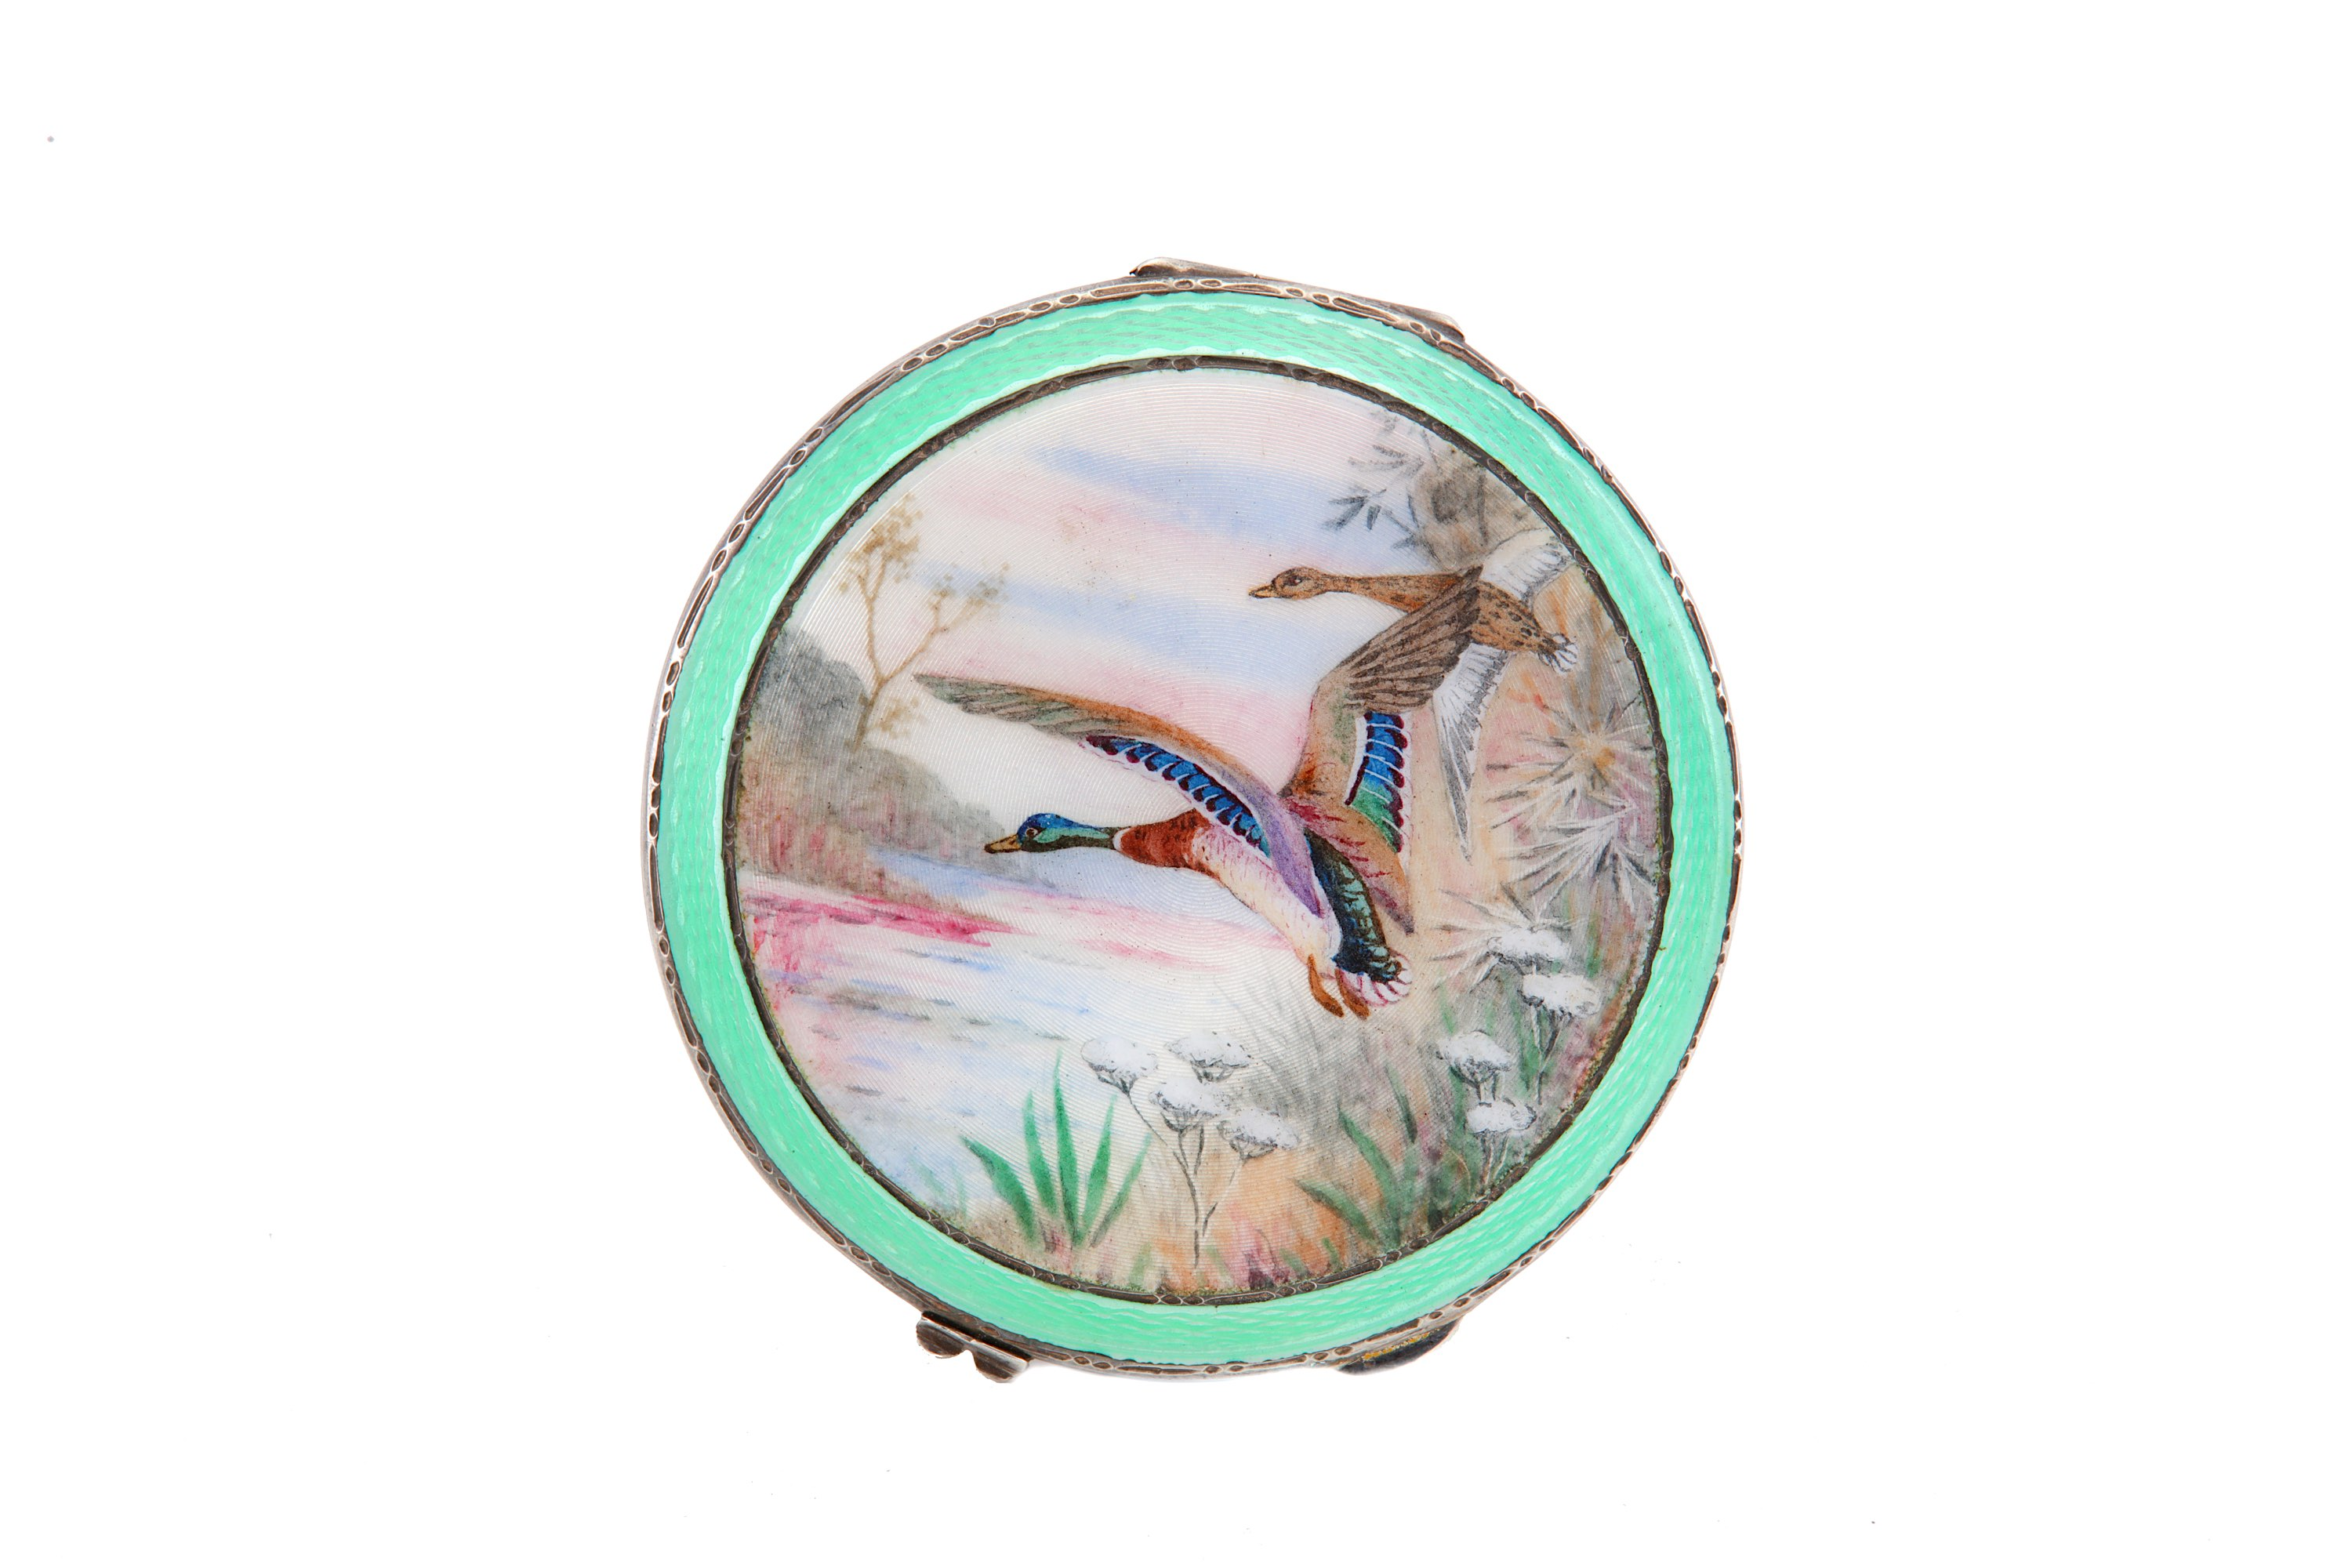 Lot 8 - A George VI sterling silver and guilloche enamel compact, Birmingham 1937 by Henry Clifford Davis